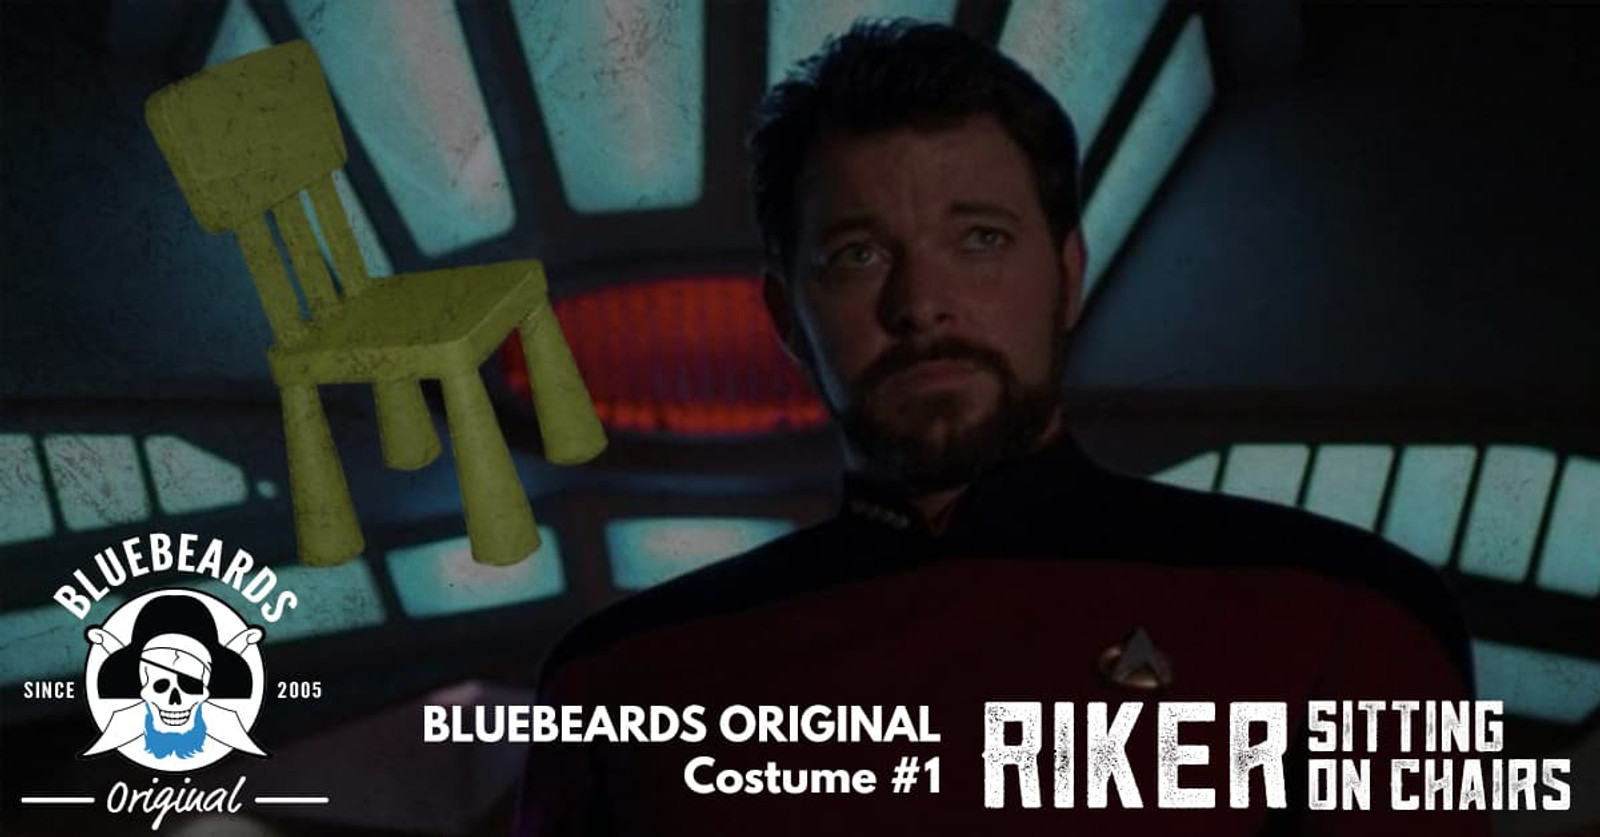 Number One: Make It So! A costume for the (short) bearded man